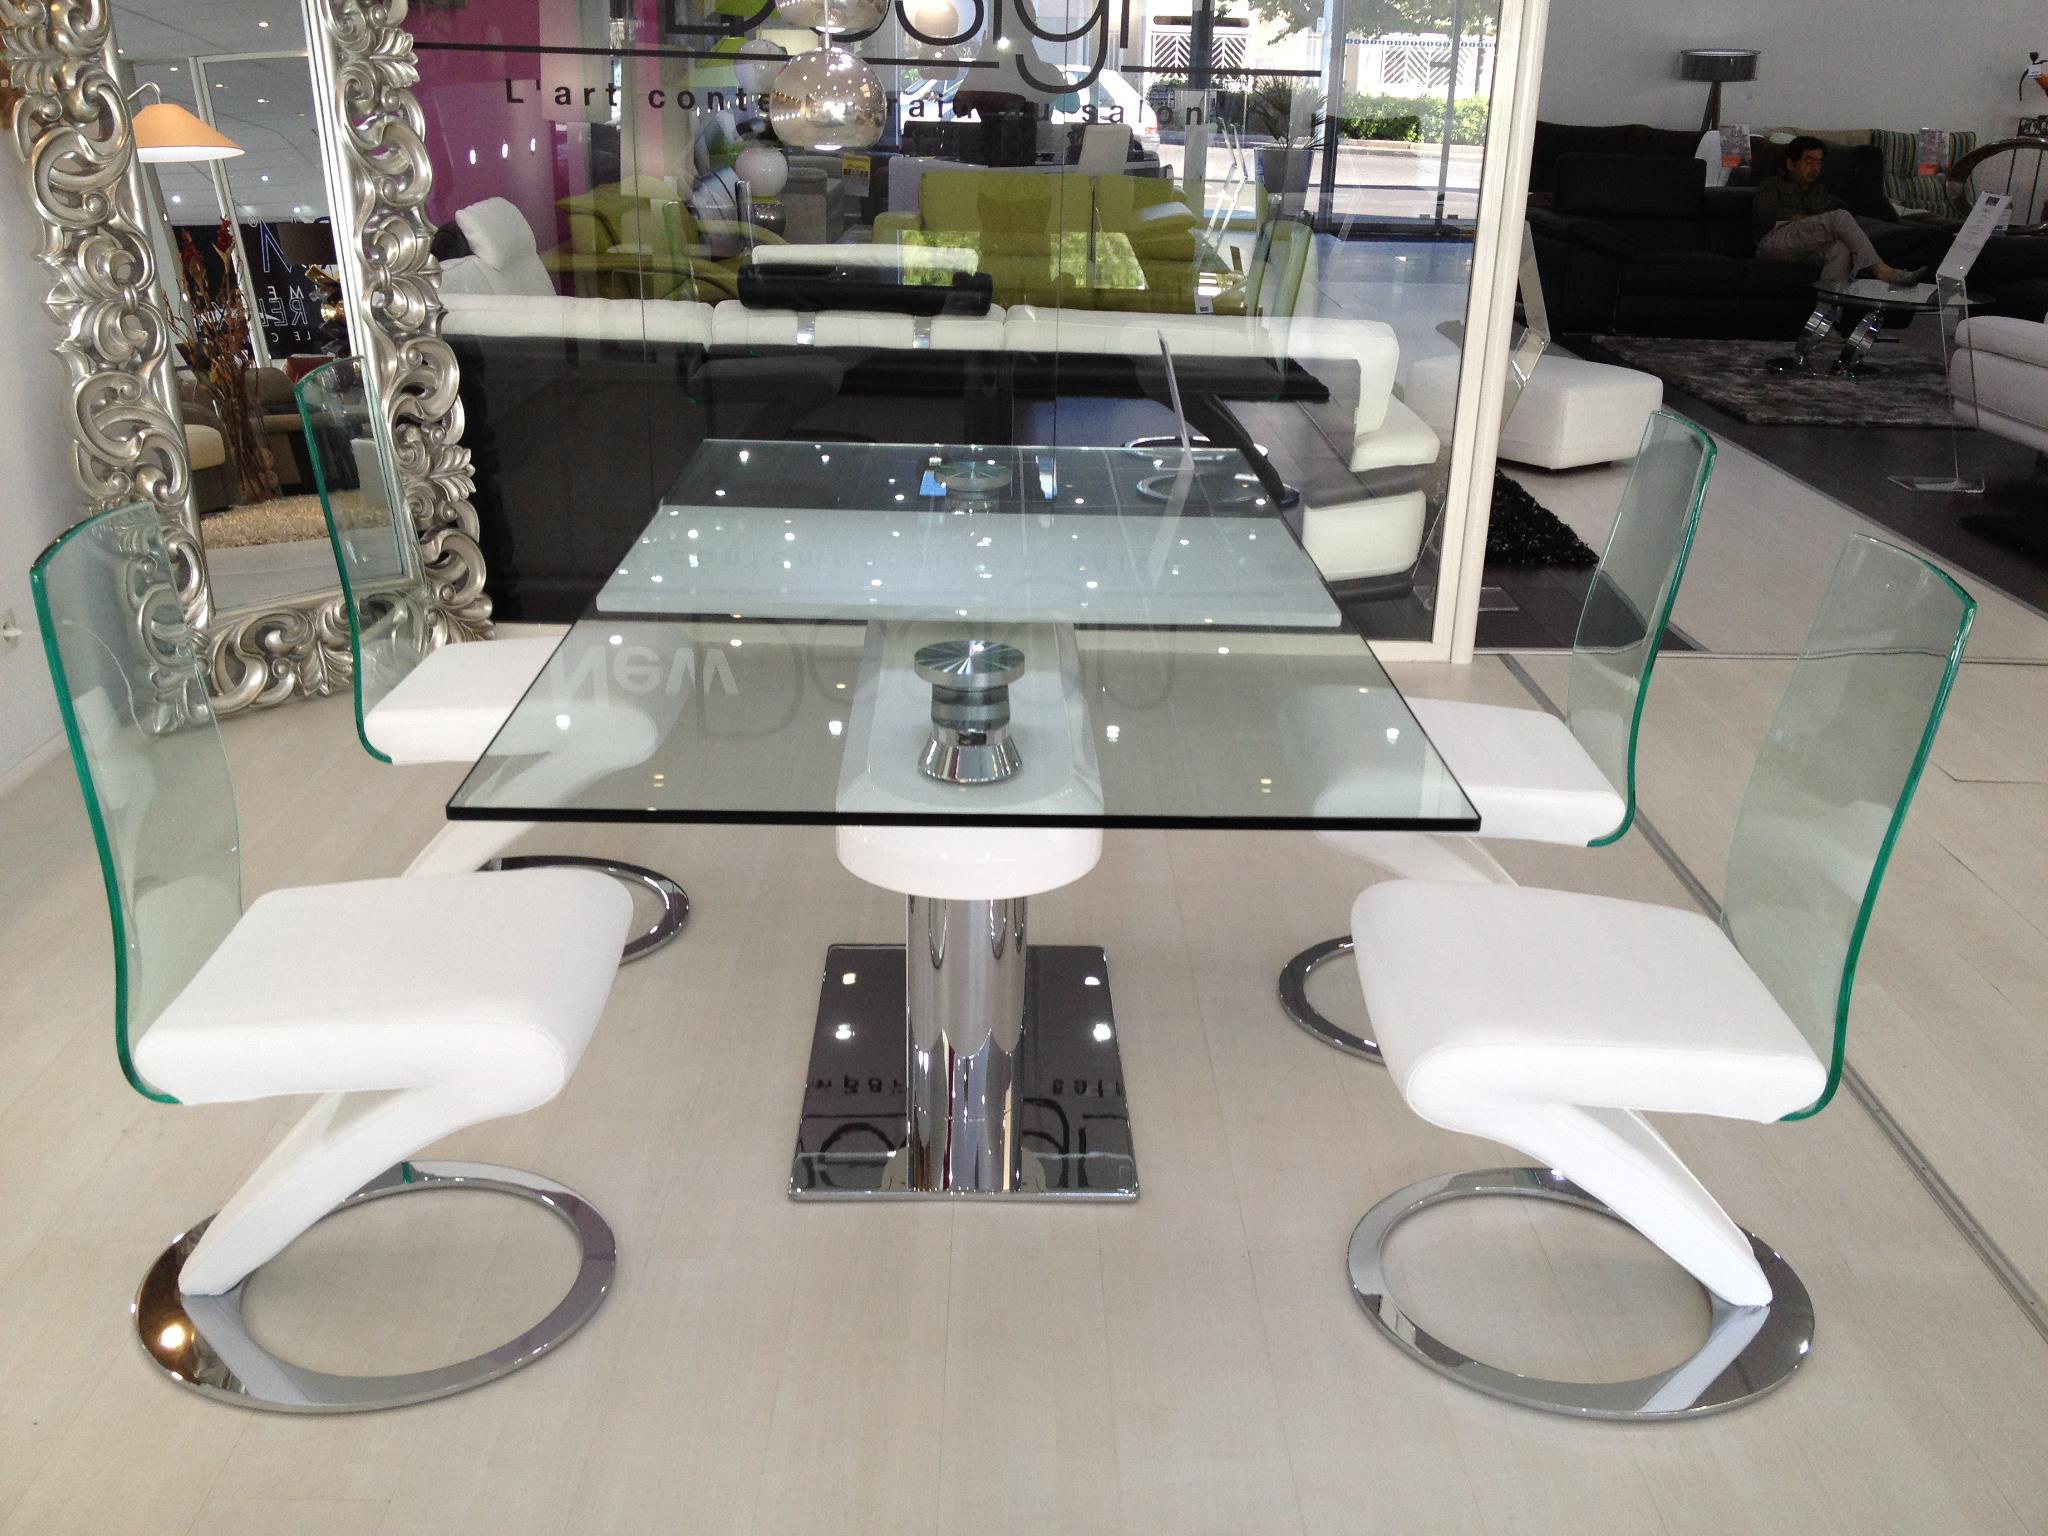 Table salle manger design en verre avec rallonges for Table de sejour design